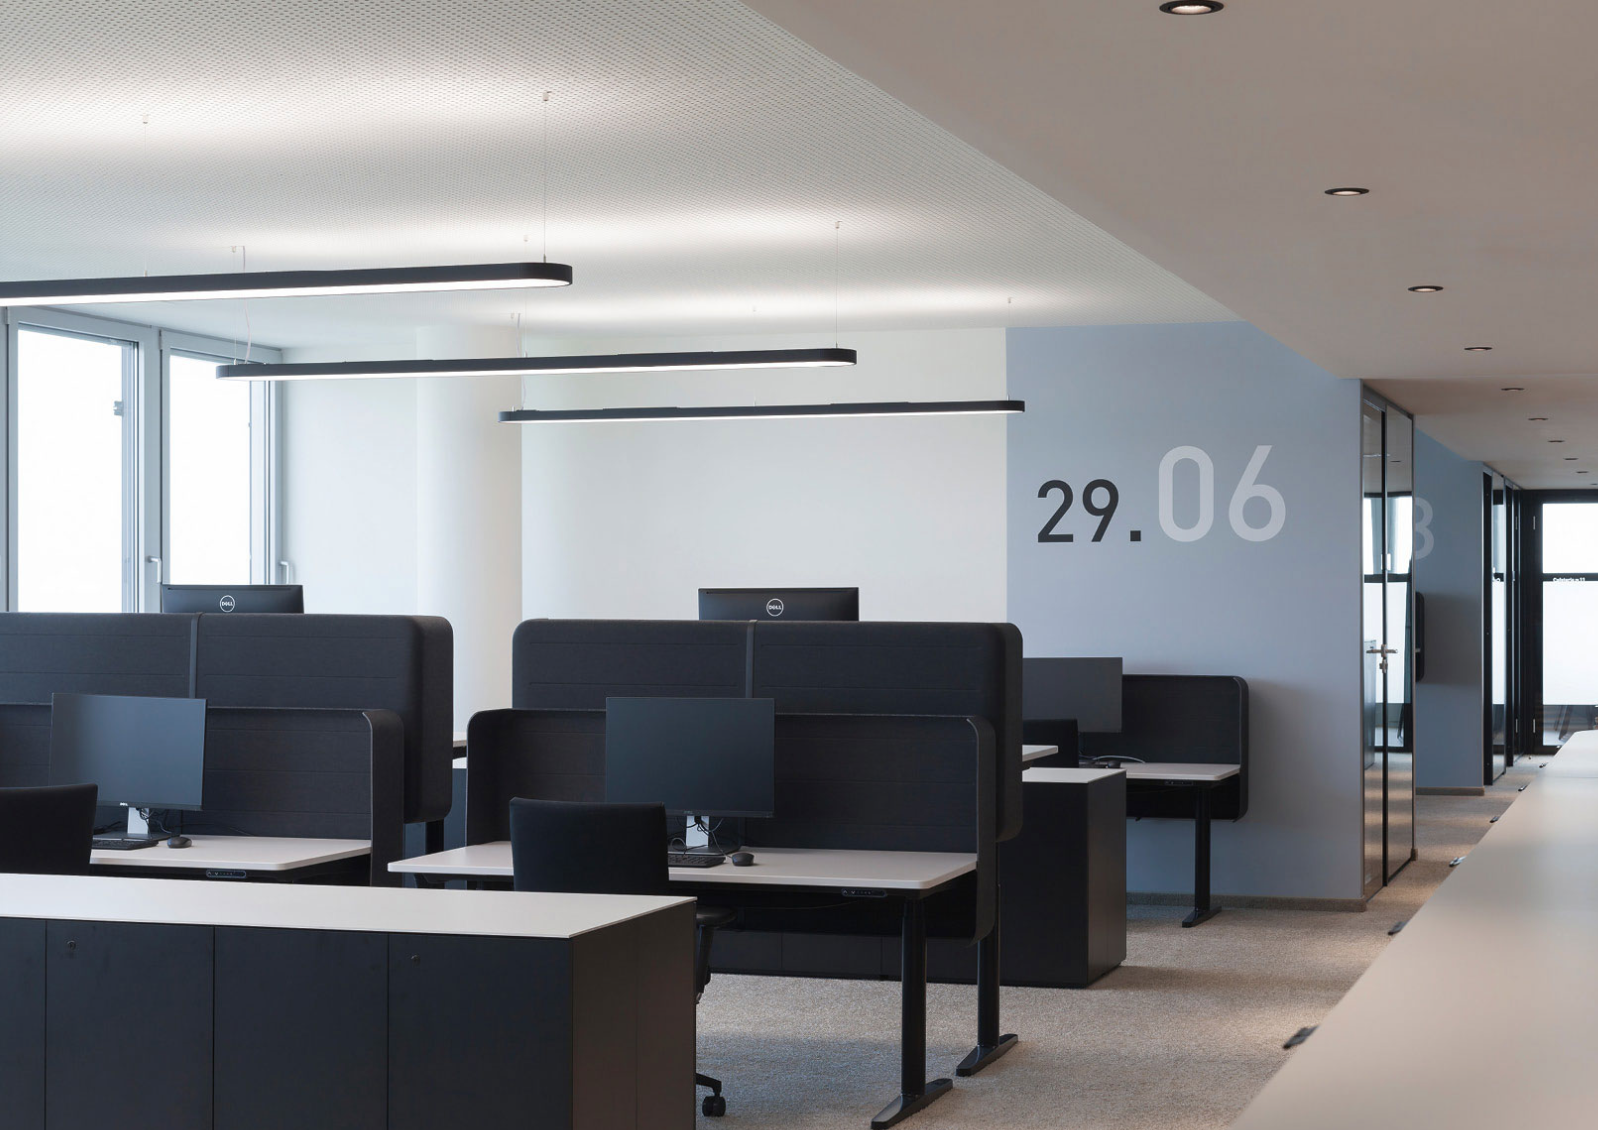 LED Profiles Direct/indirect Light From XAL Showroom In Denmark :  Www.ankerco.